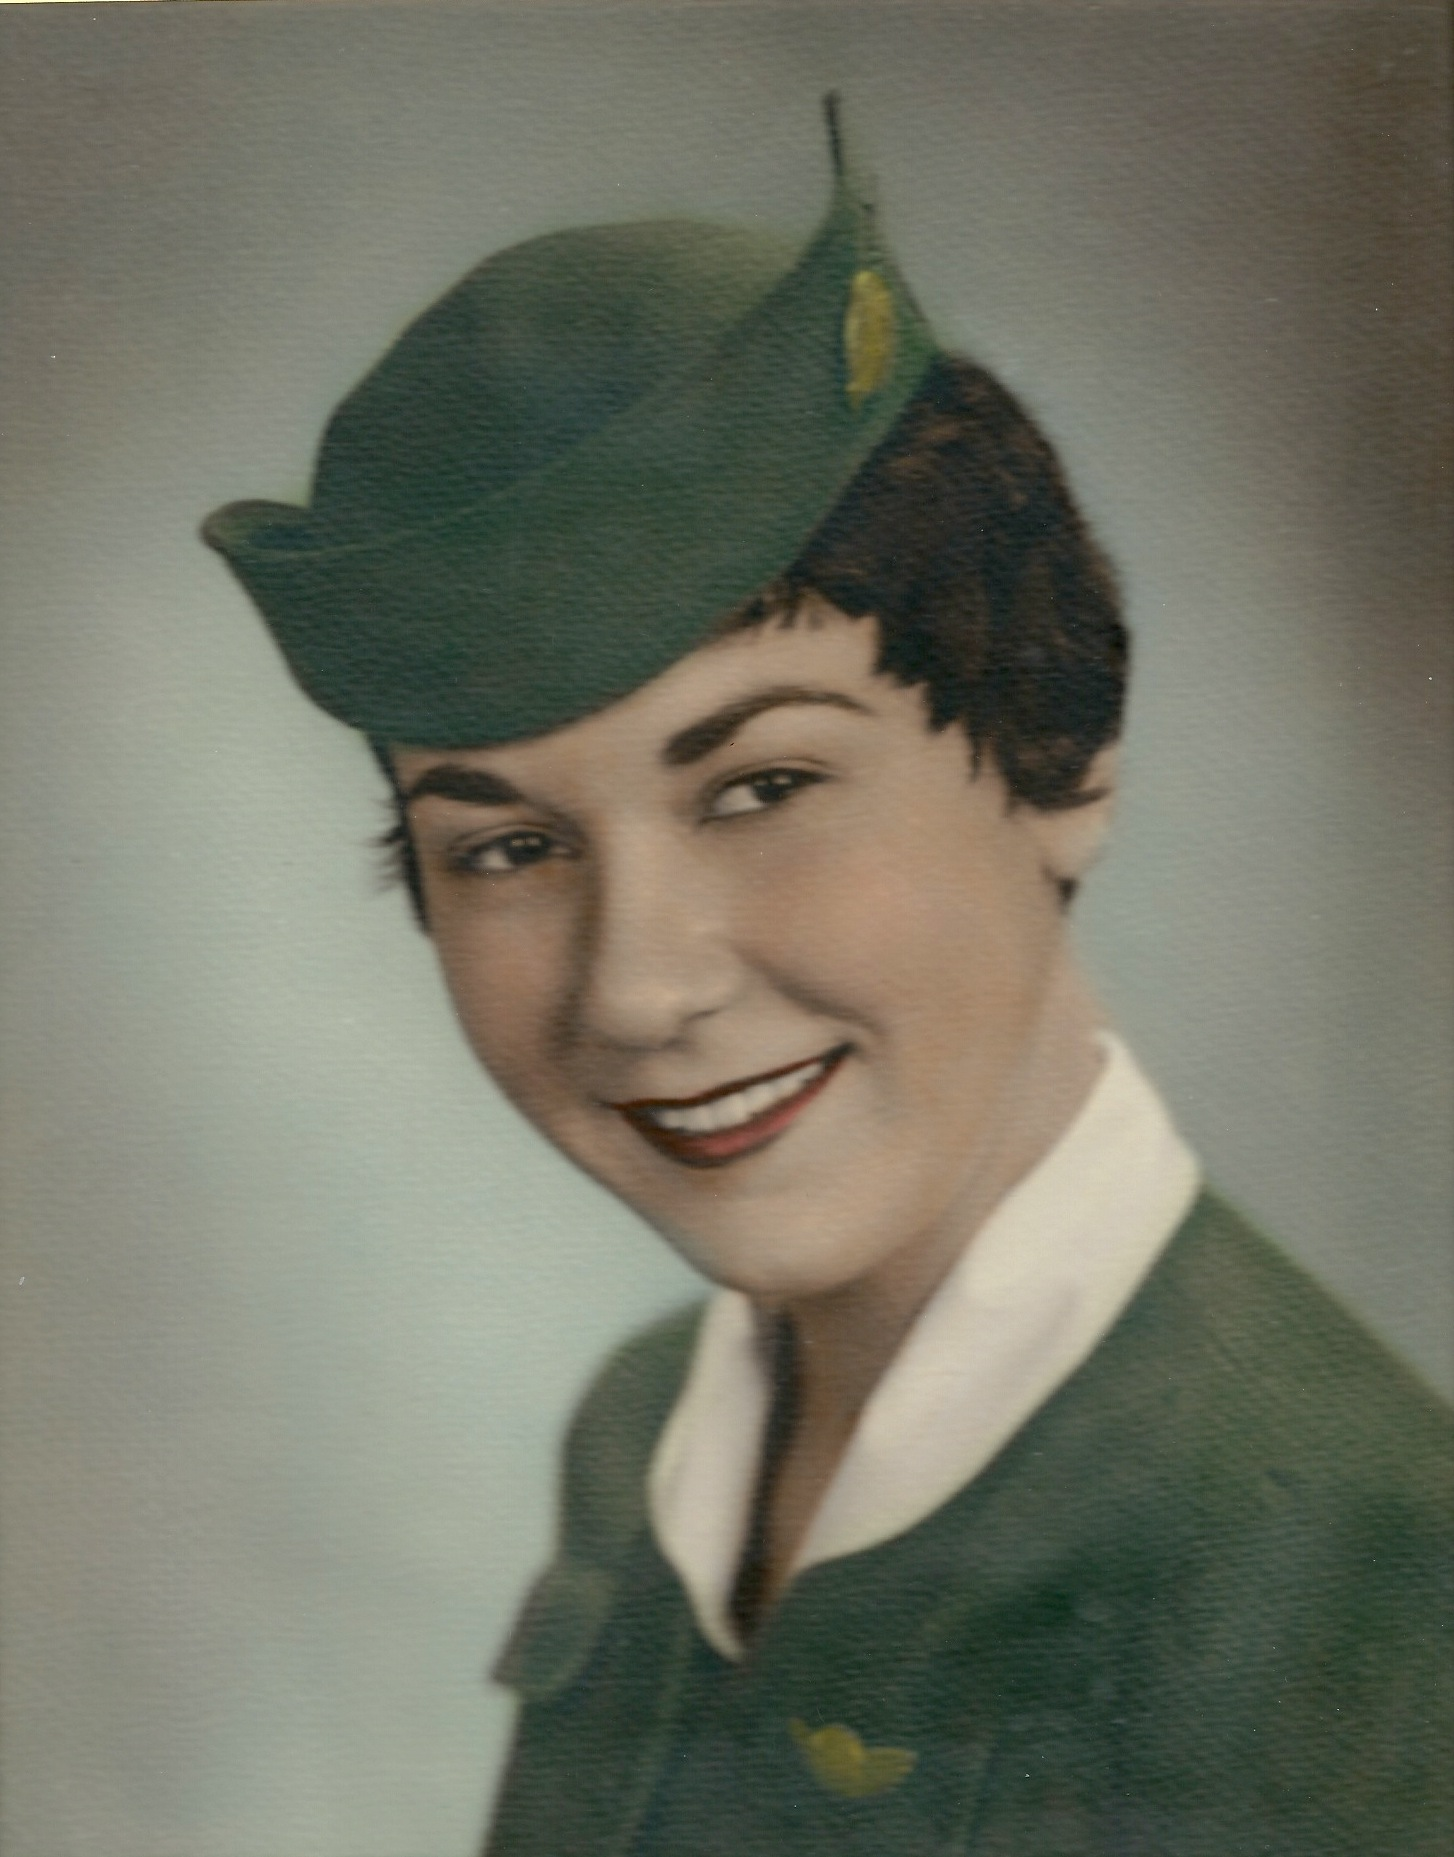 Flight Attendant MargueriteMcCausland of Capital Airlines in 1957